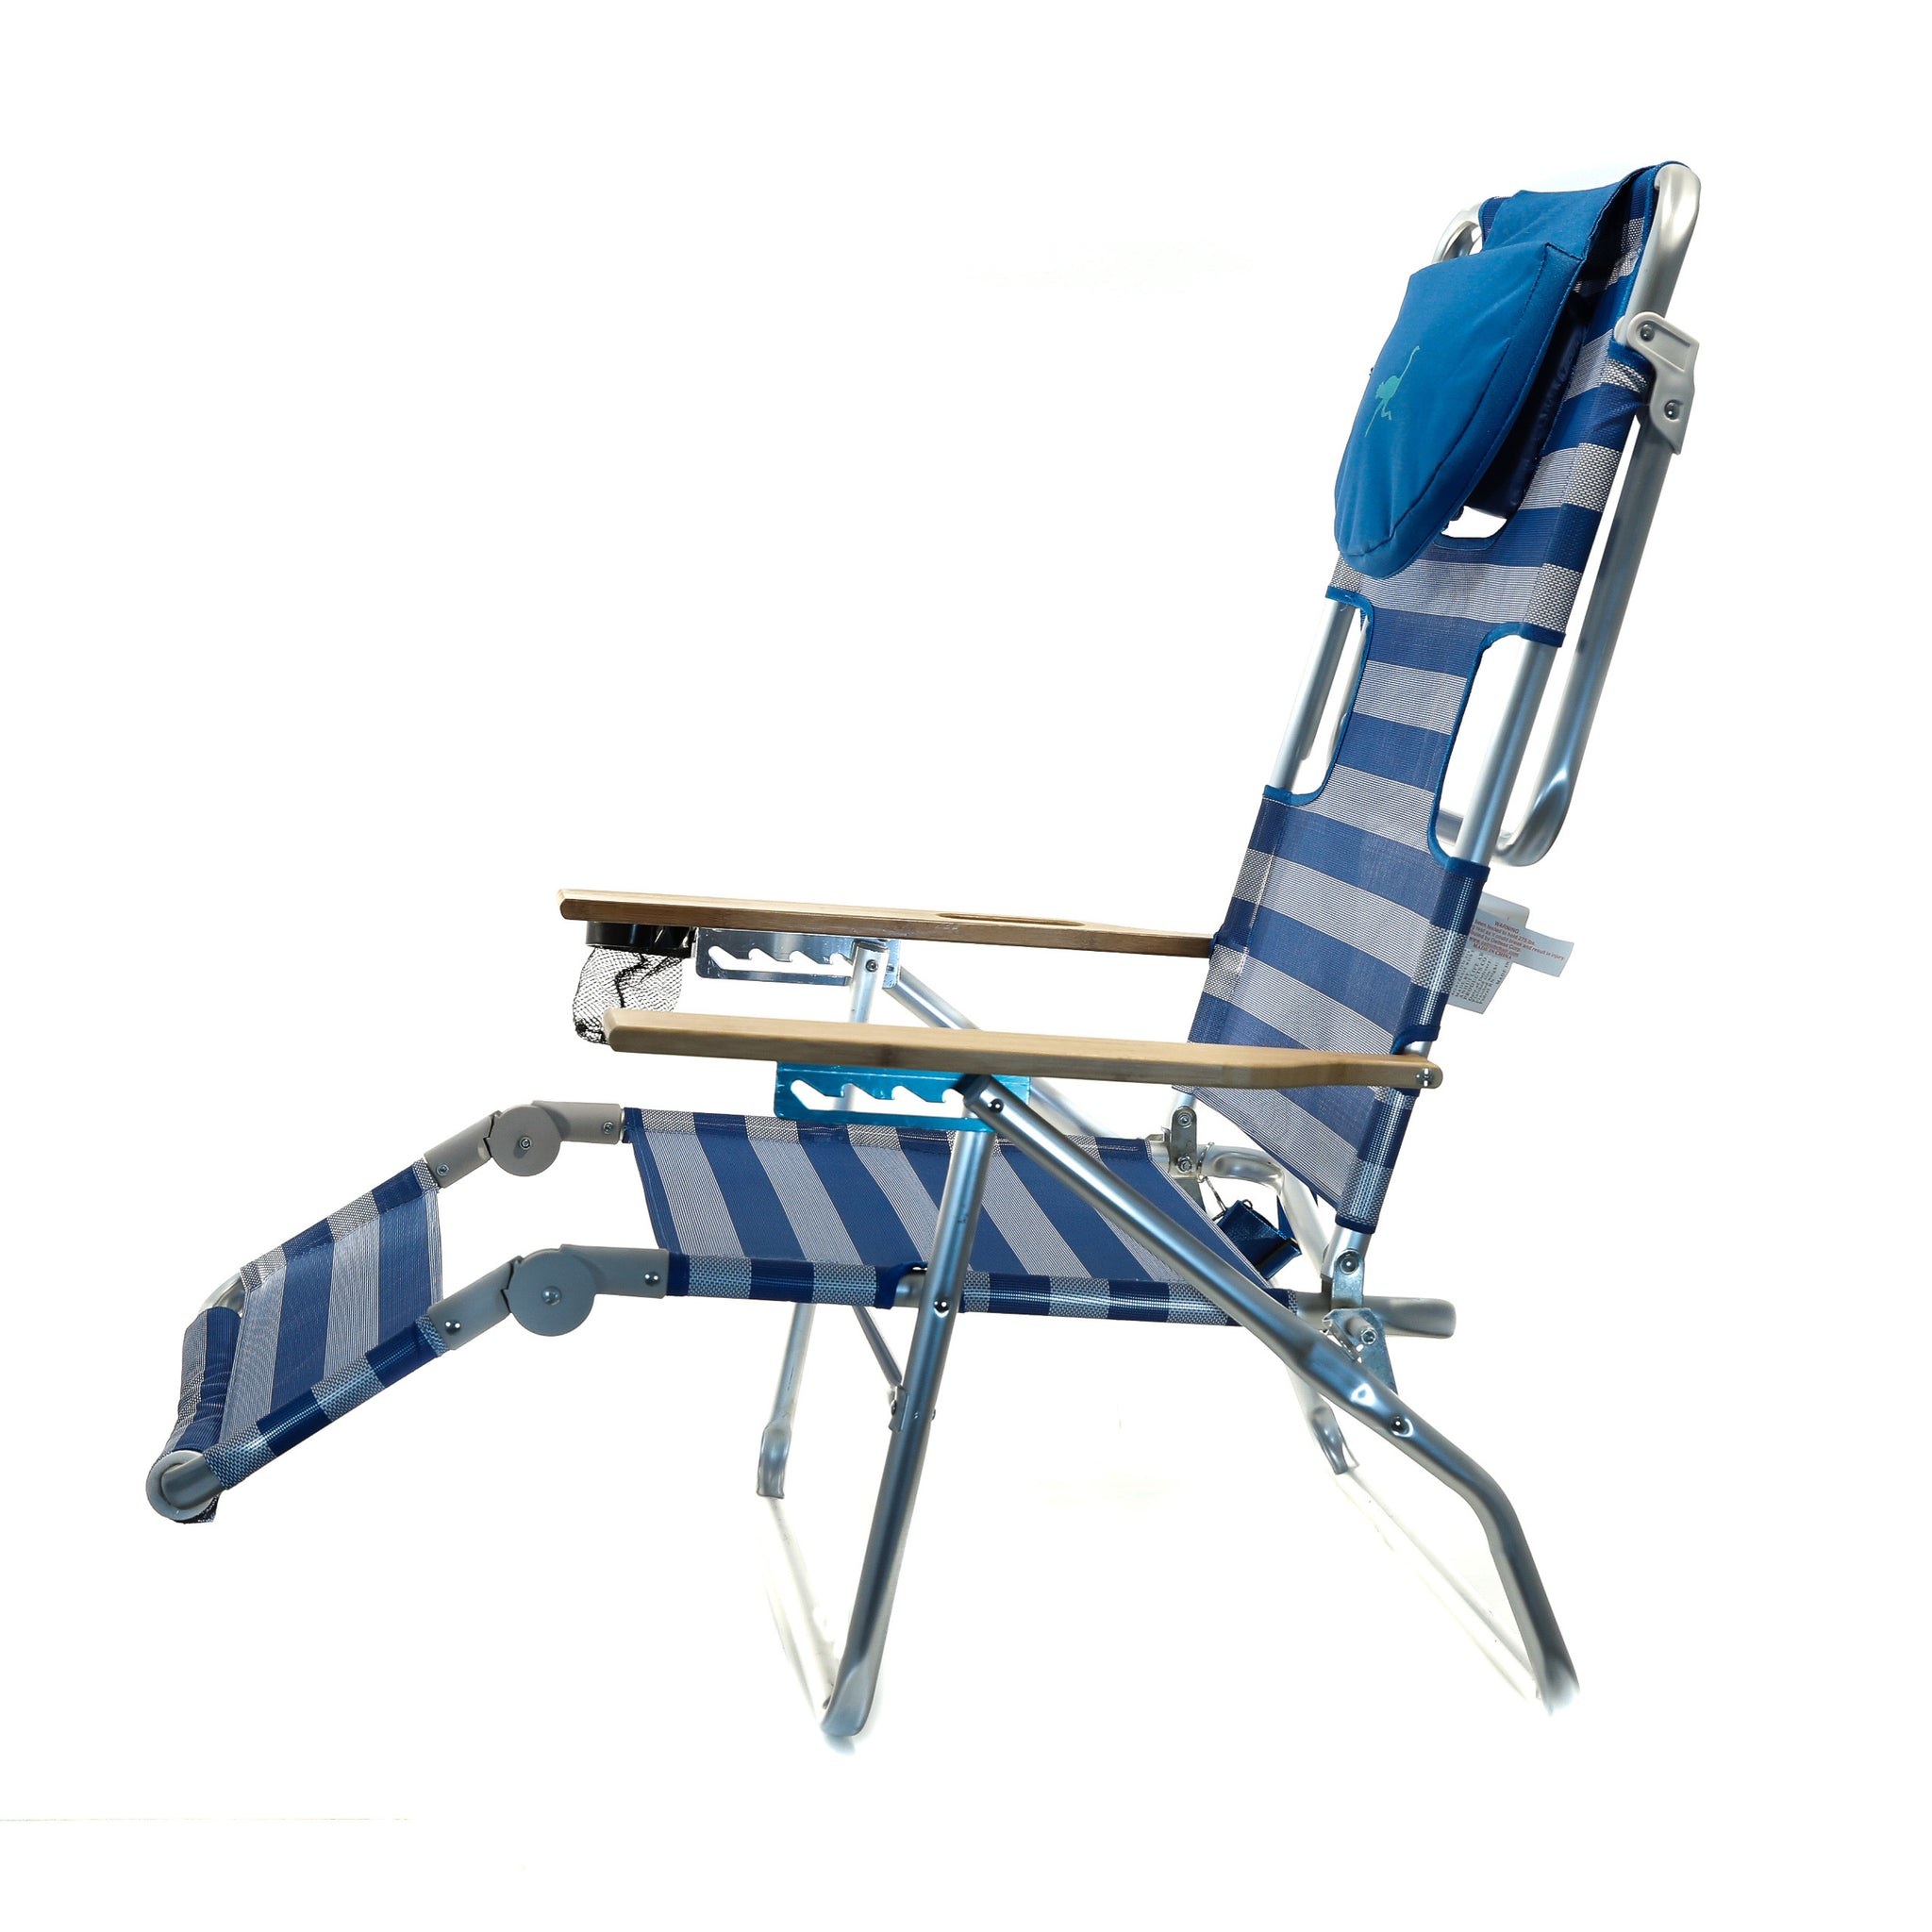 patio on full sale chair lounge chairs target chaise pool outdoor statesville reclining under textilene of padded hampton adj with outsunny wheels size furniture best recliner bay